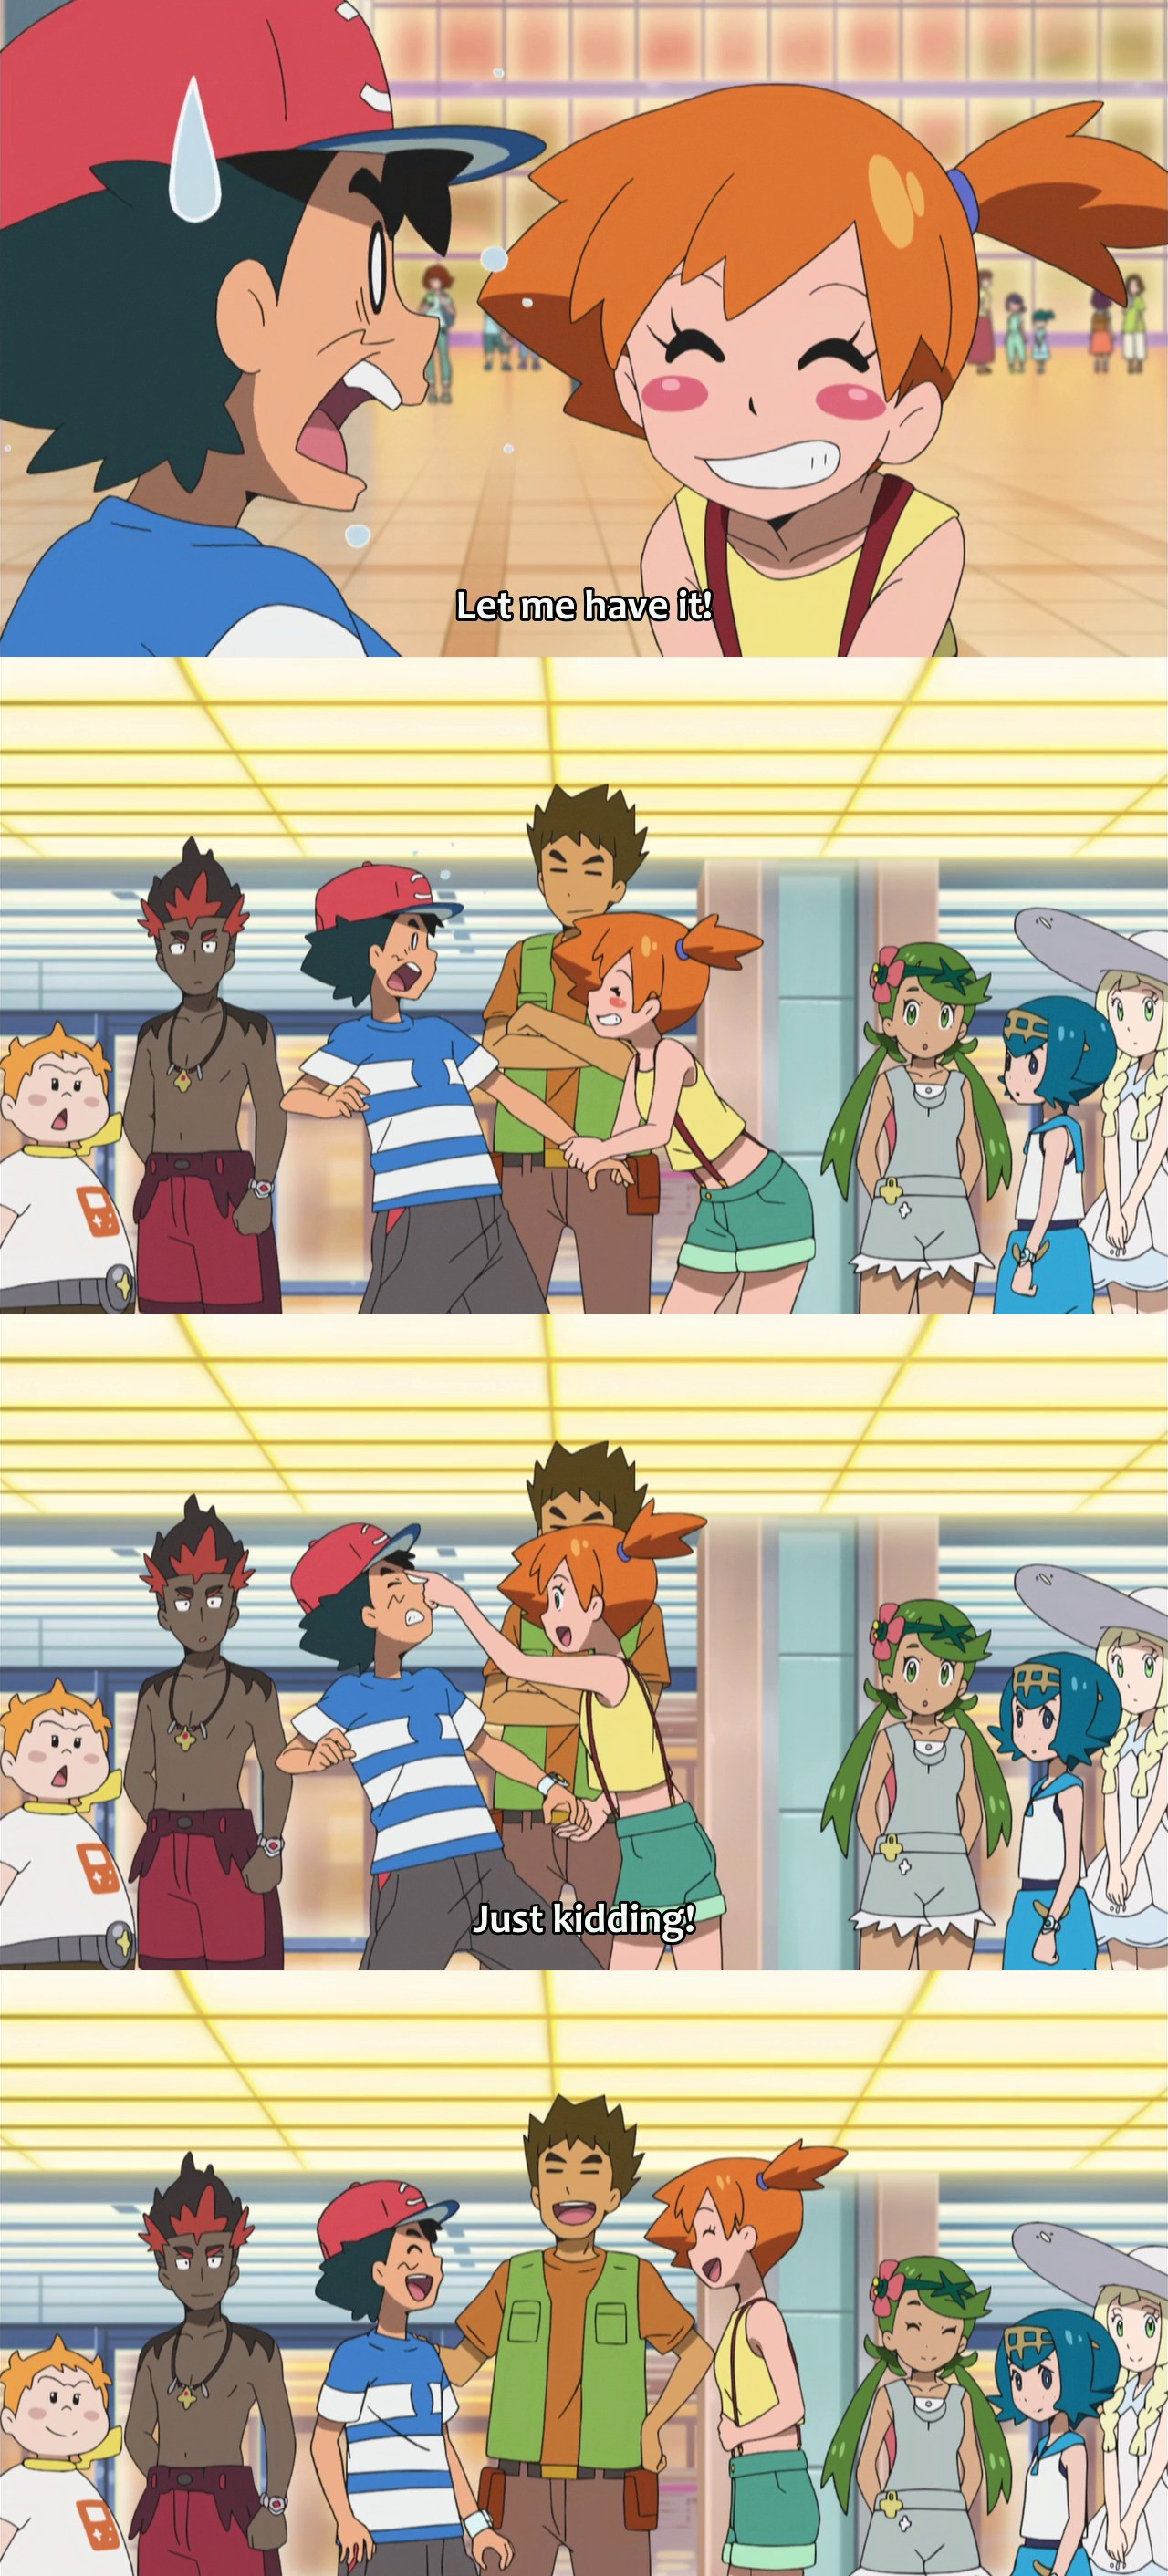 misty messing with ash pokémon sun and moon know your meme